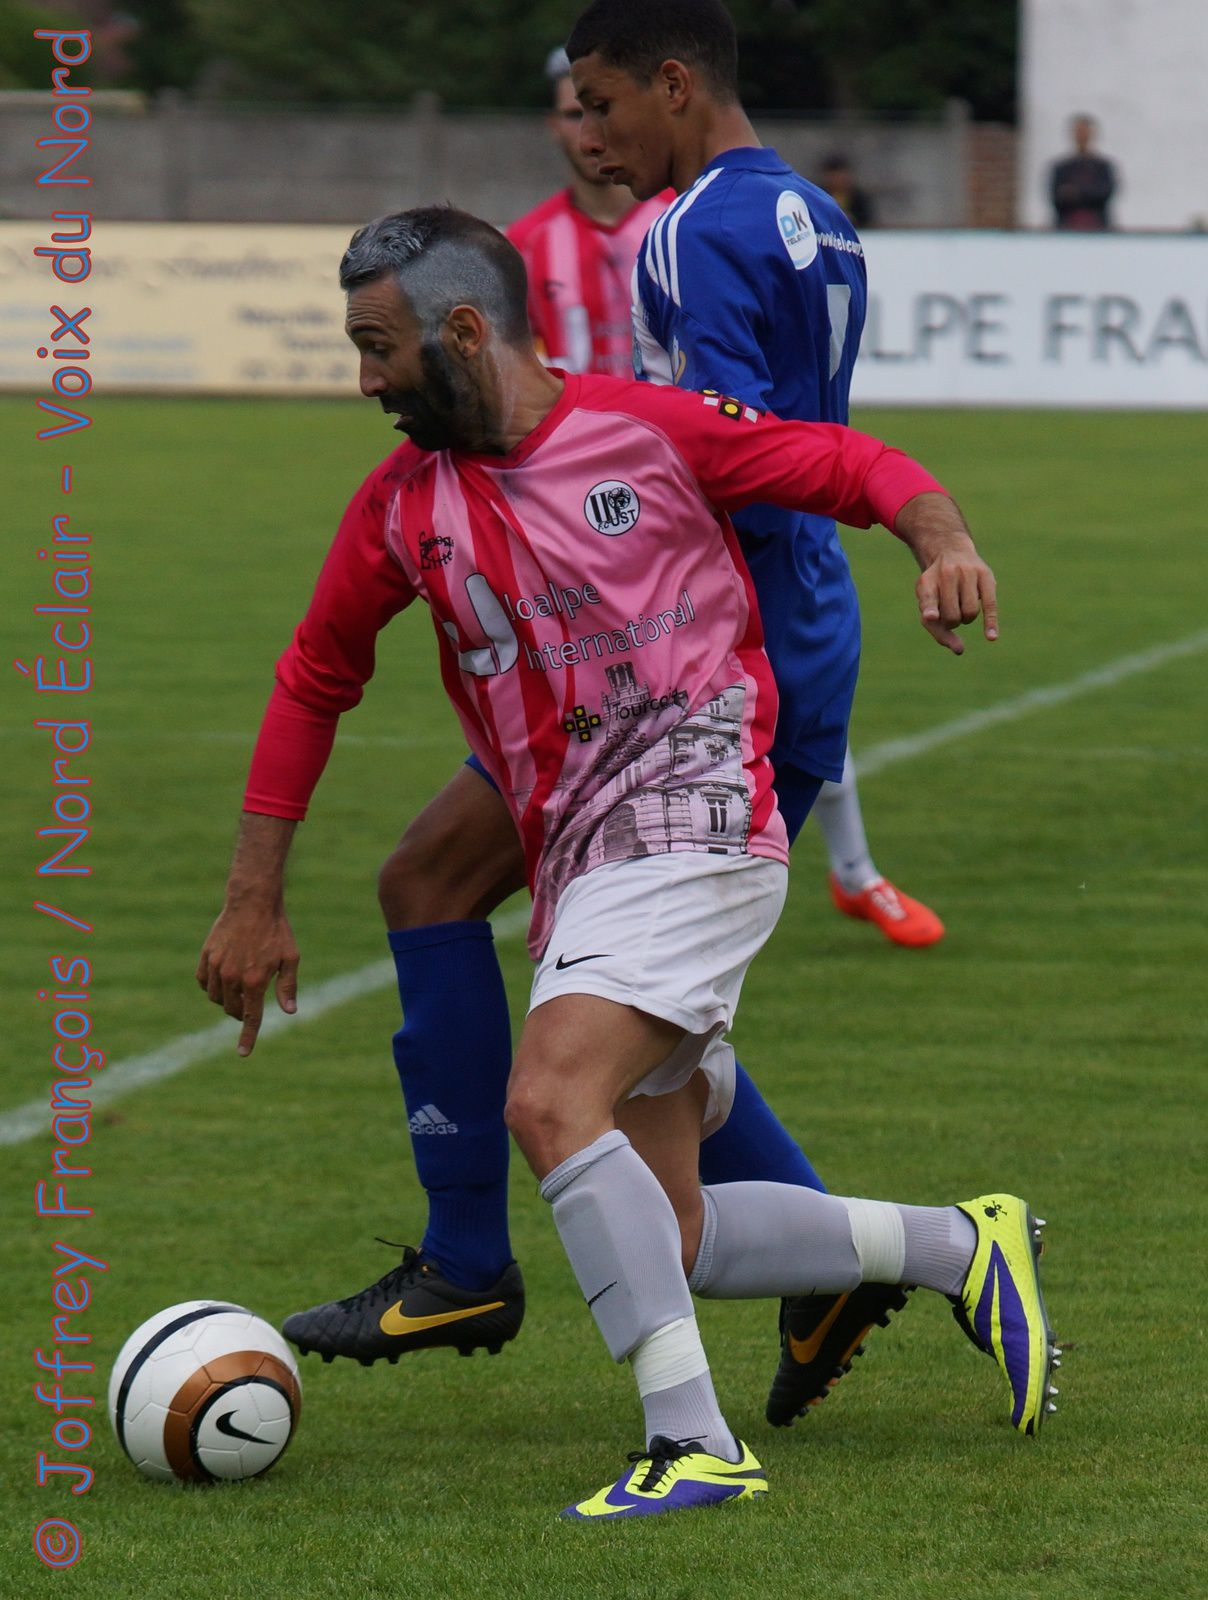 01.06.14 DH Tourcoing-Dunkerque